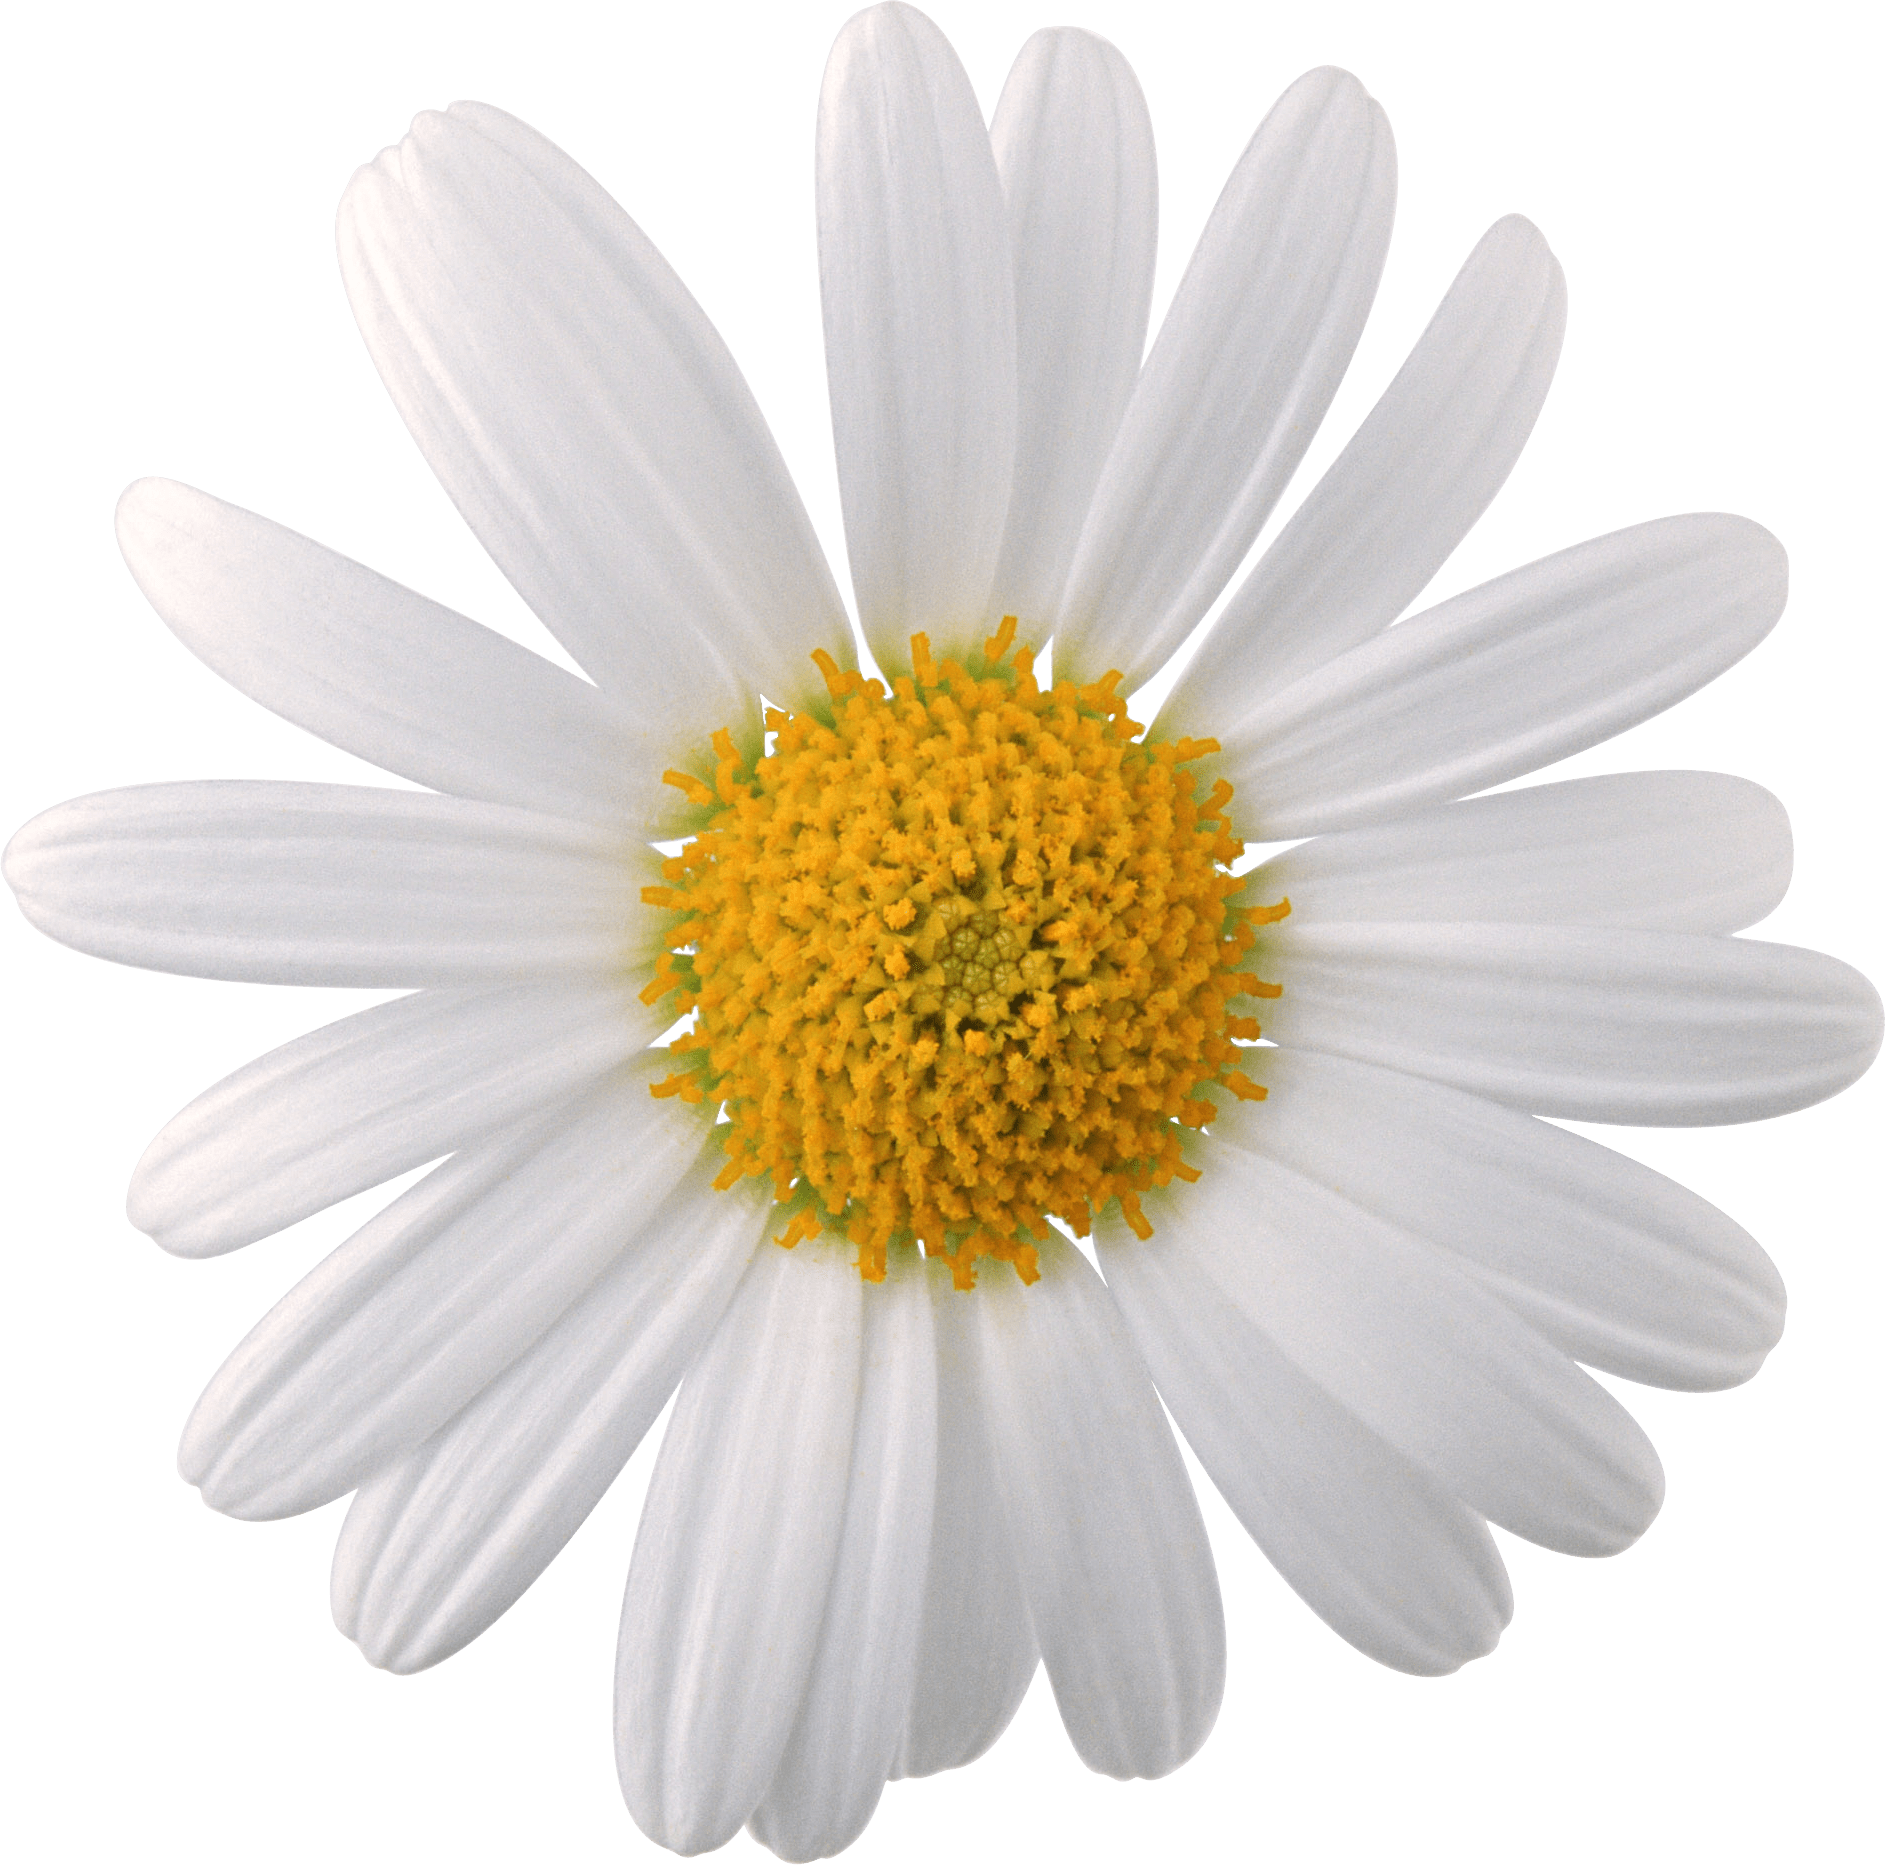 Flower Black And White Transparent Png Pictures: Margarida